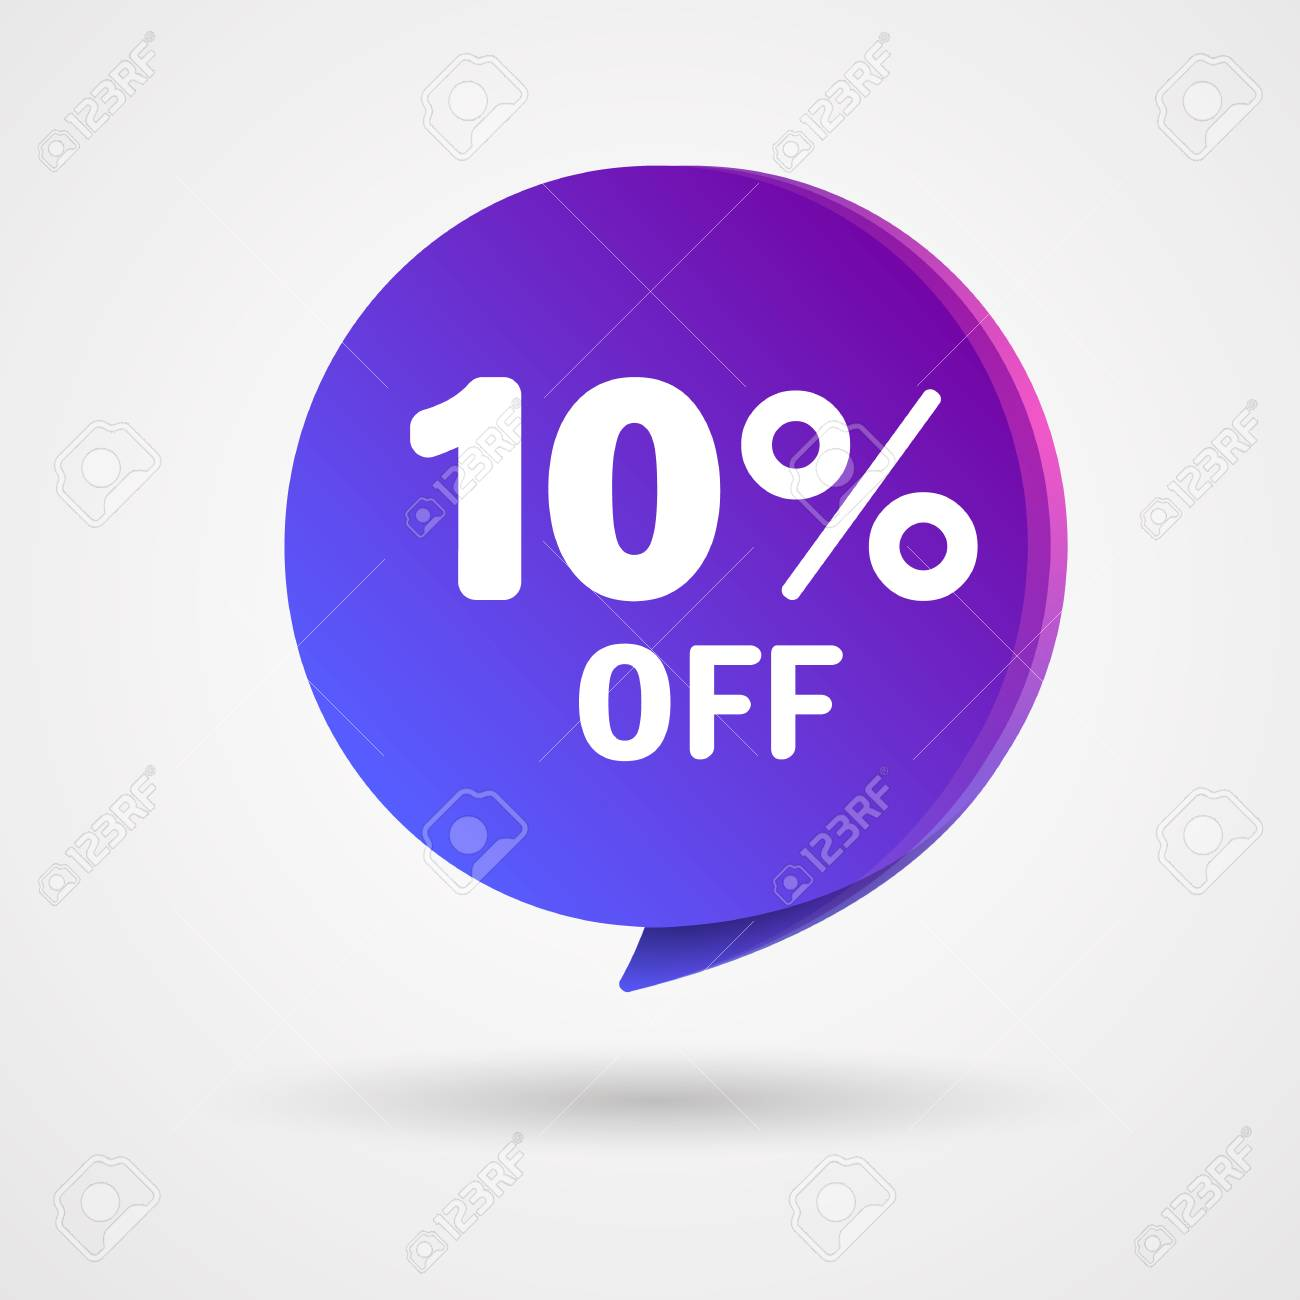 10% OFF Discount Sticker. Sale blue and purple Tag Isolated Vector Illustration. Discount Offer Price Label, Vector Price Discount Symbol. - 101973805